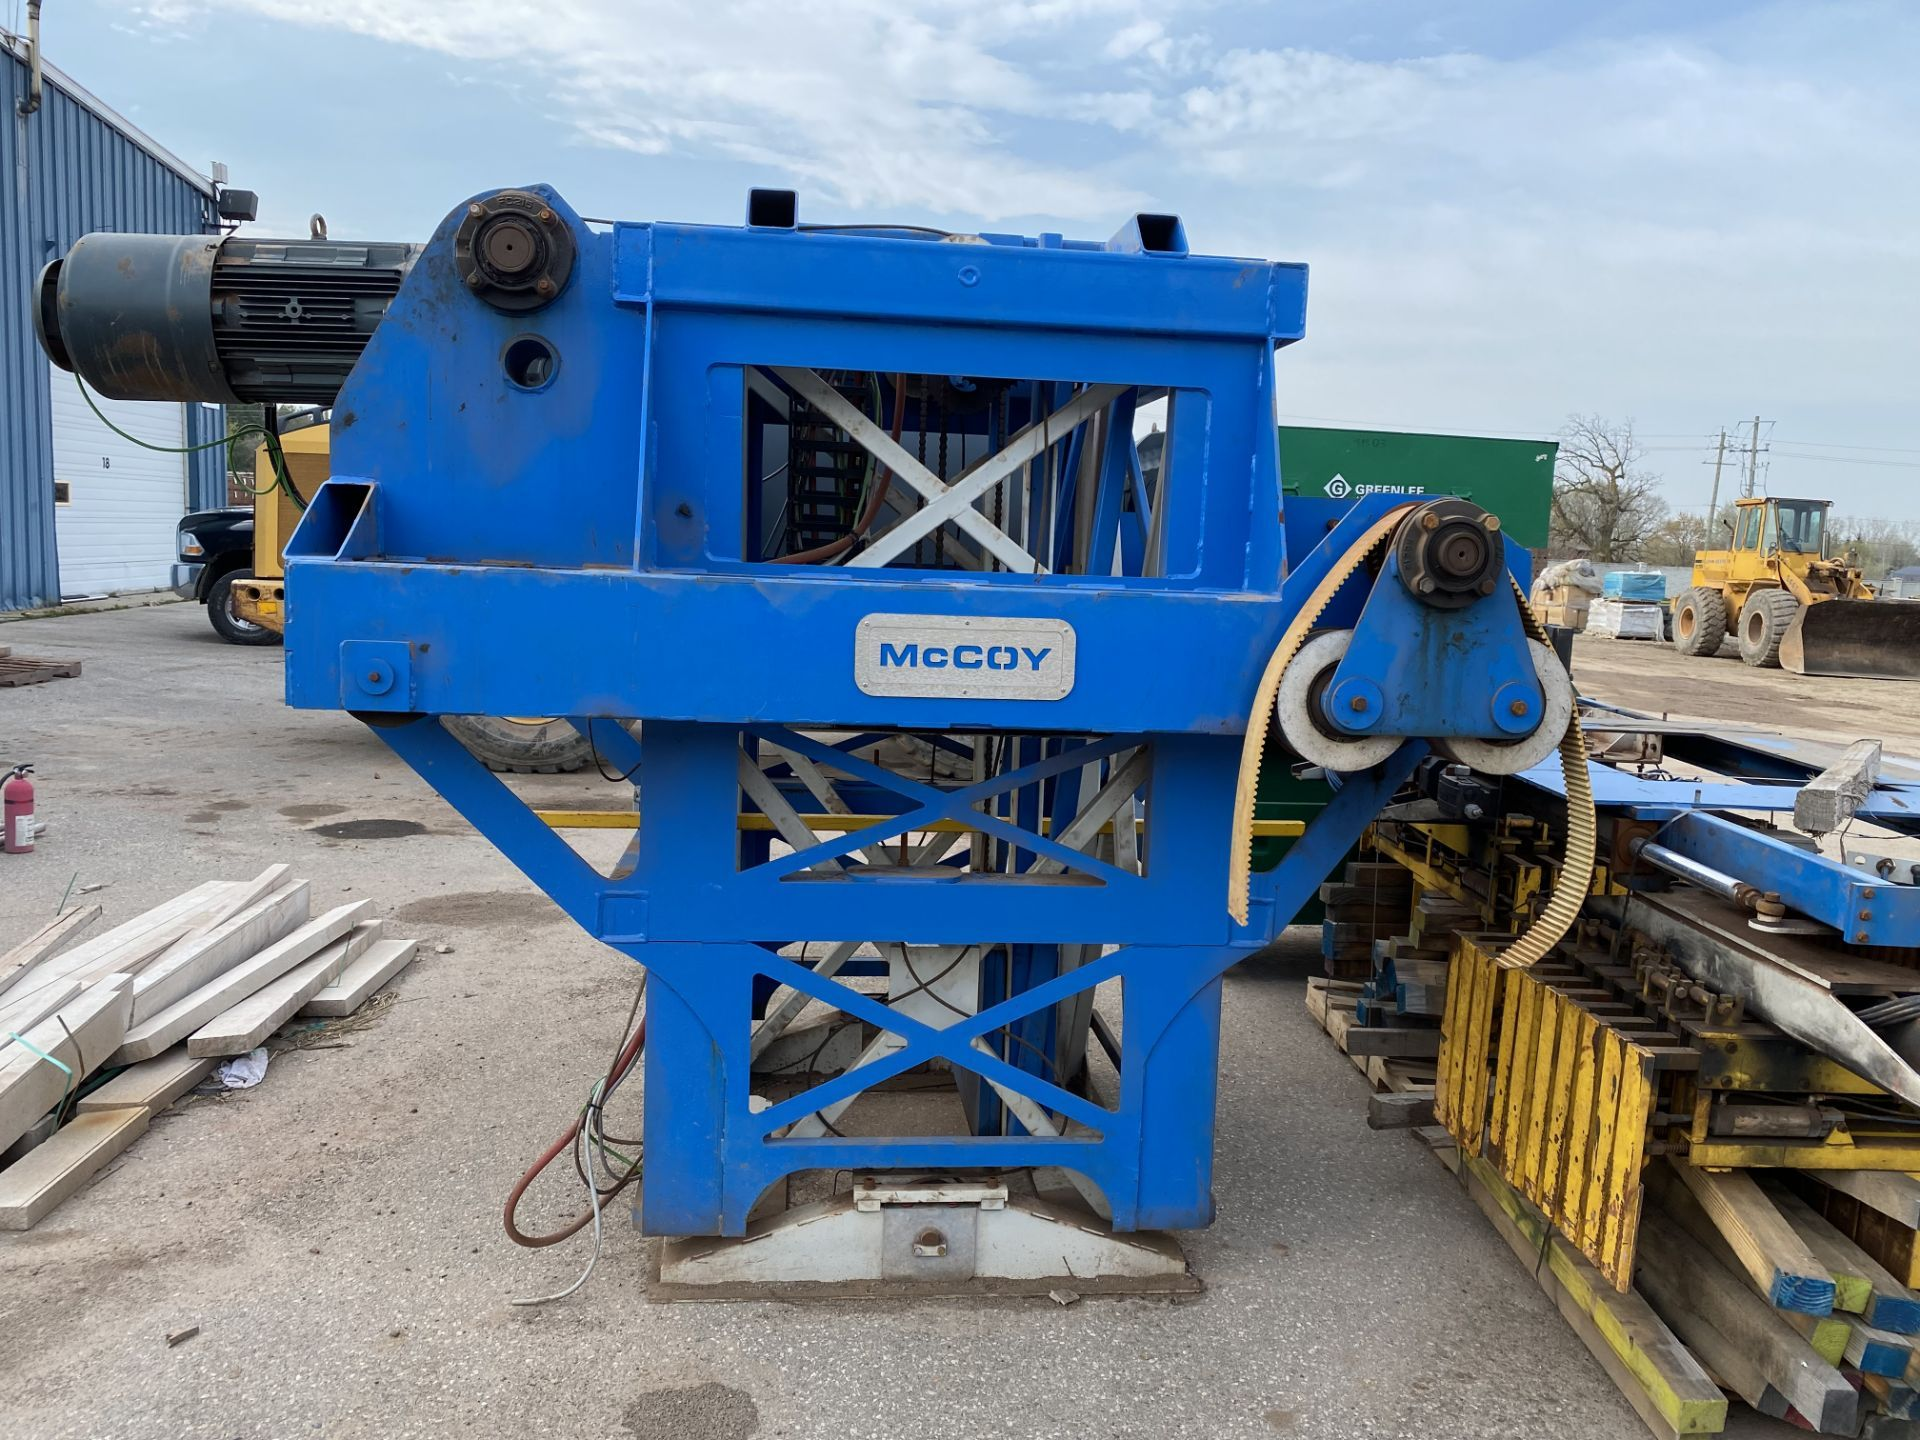 McCoy GR01 GANTRY STYLE BRICK / BLOCK CLAMP UNIT made in 2016 - Image 2 of 12